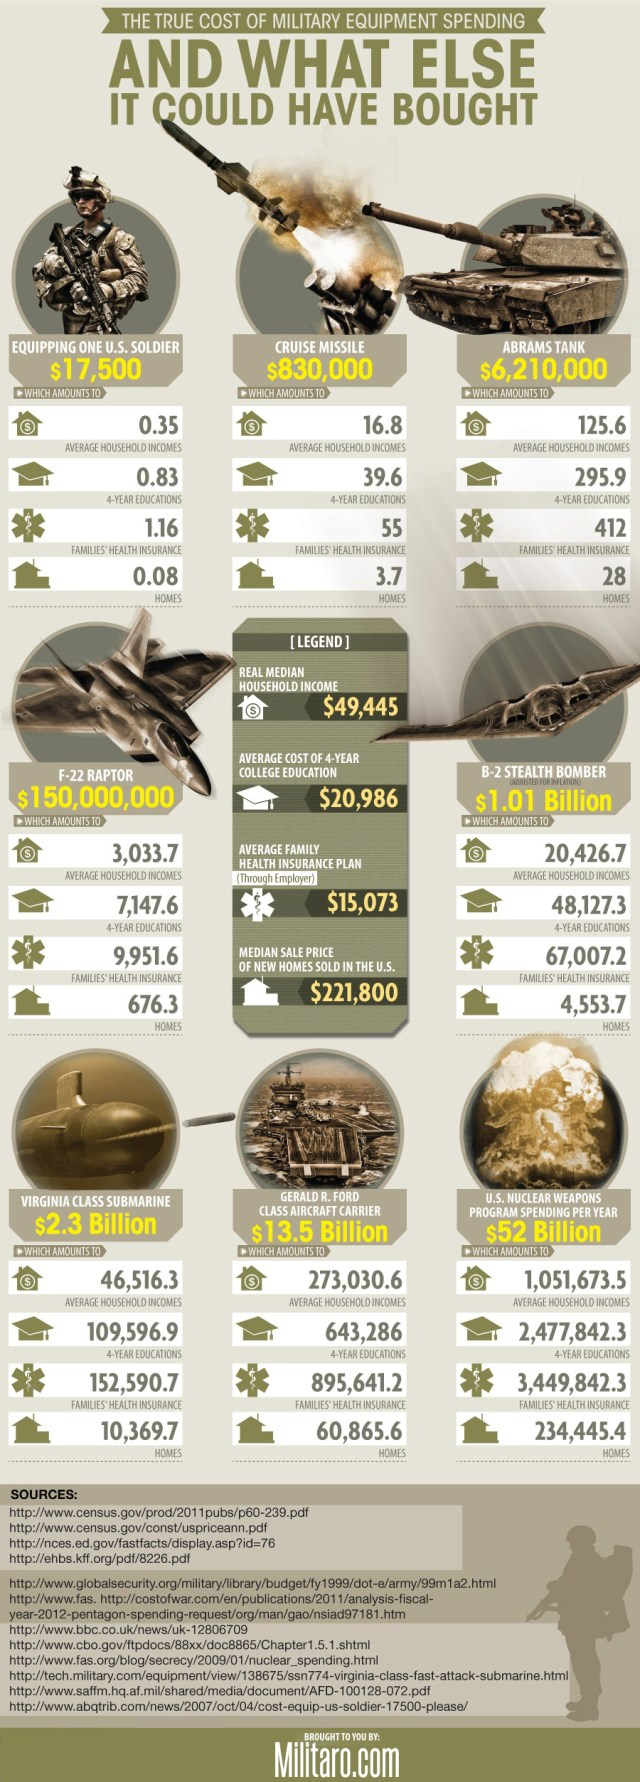 how-much-the-military-costs-and-what-it-could-have-bought_556f64f56eaee